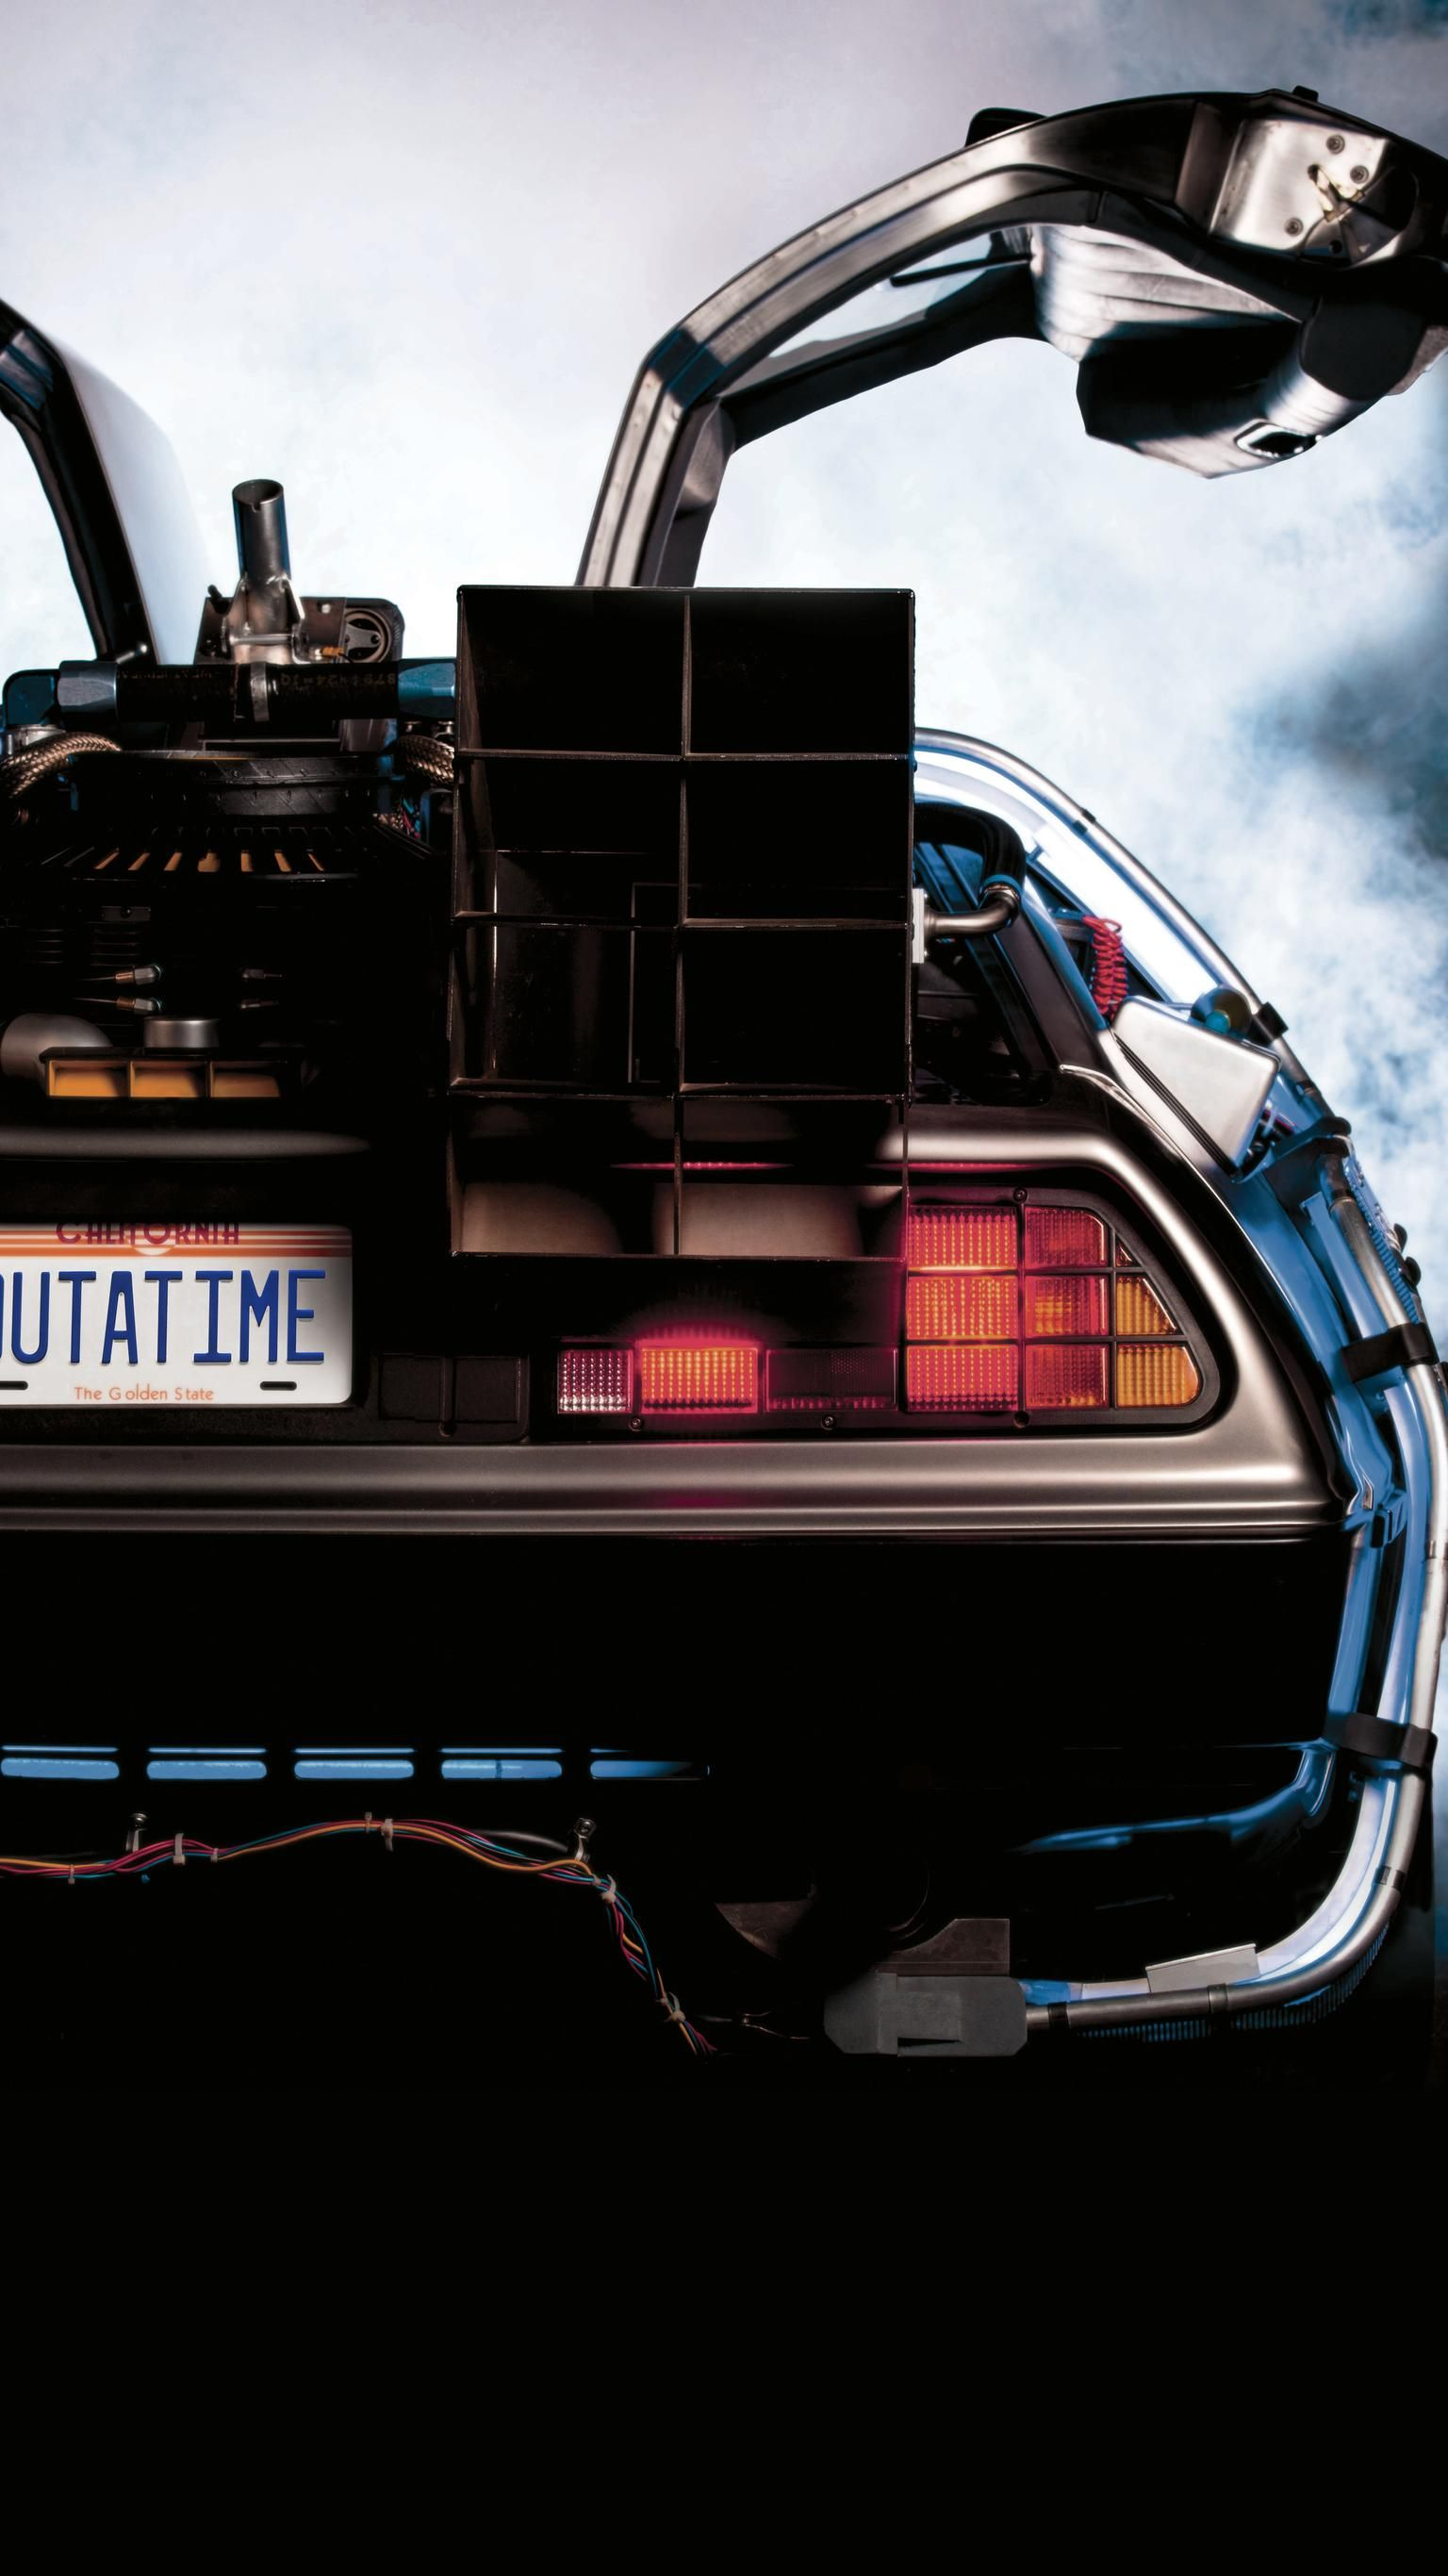 Back To The Future 1985 Phone Wallpaper Moviemania Future Wallpaper Back To The Future Future Car